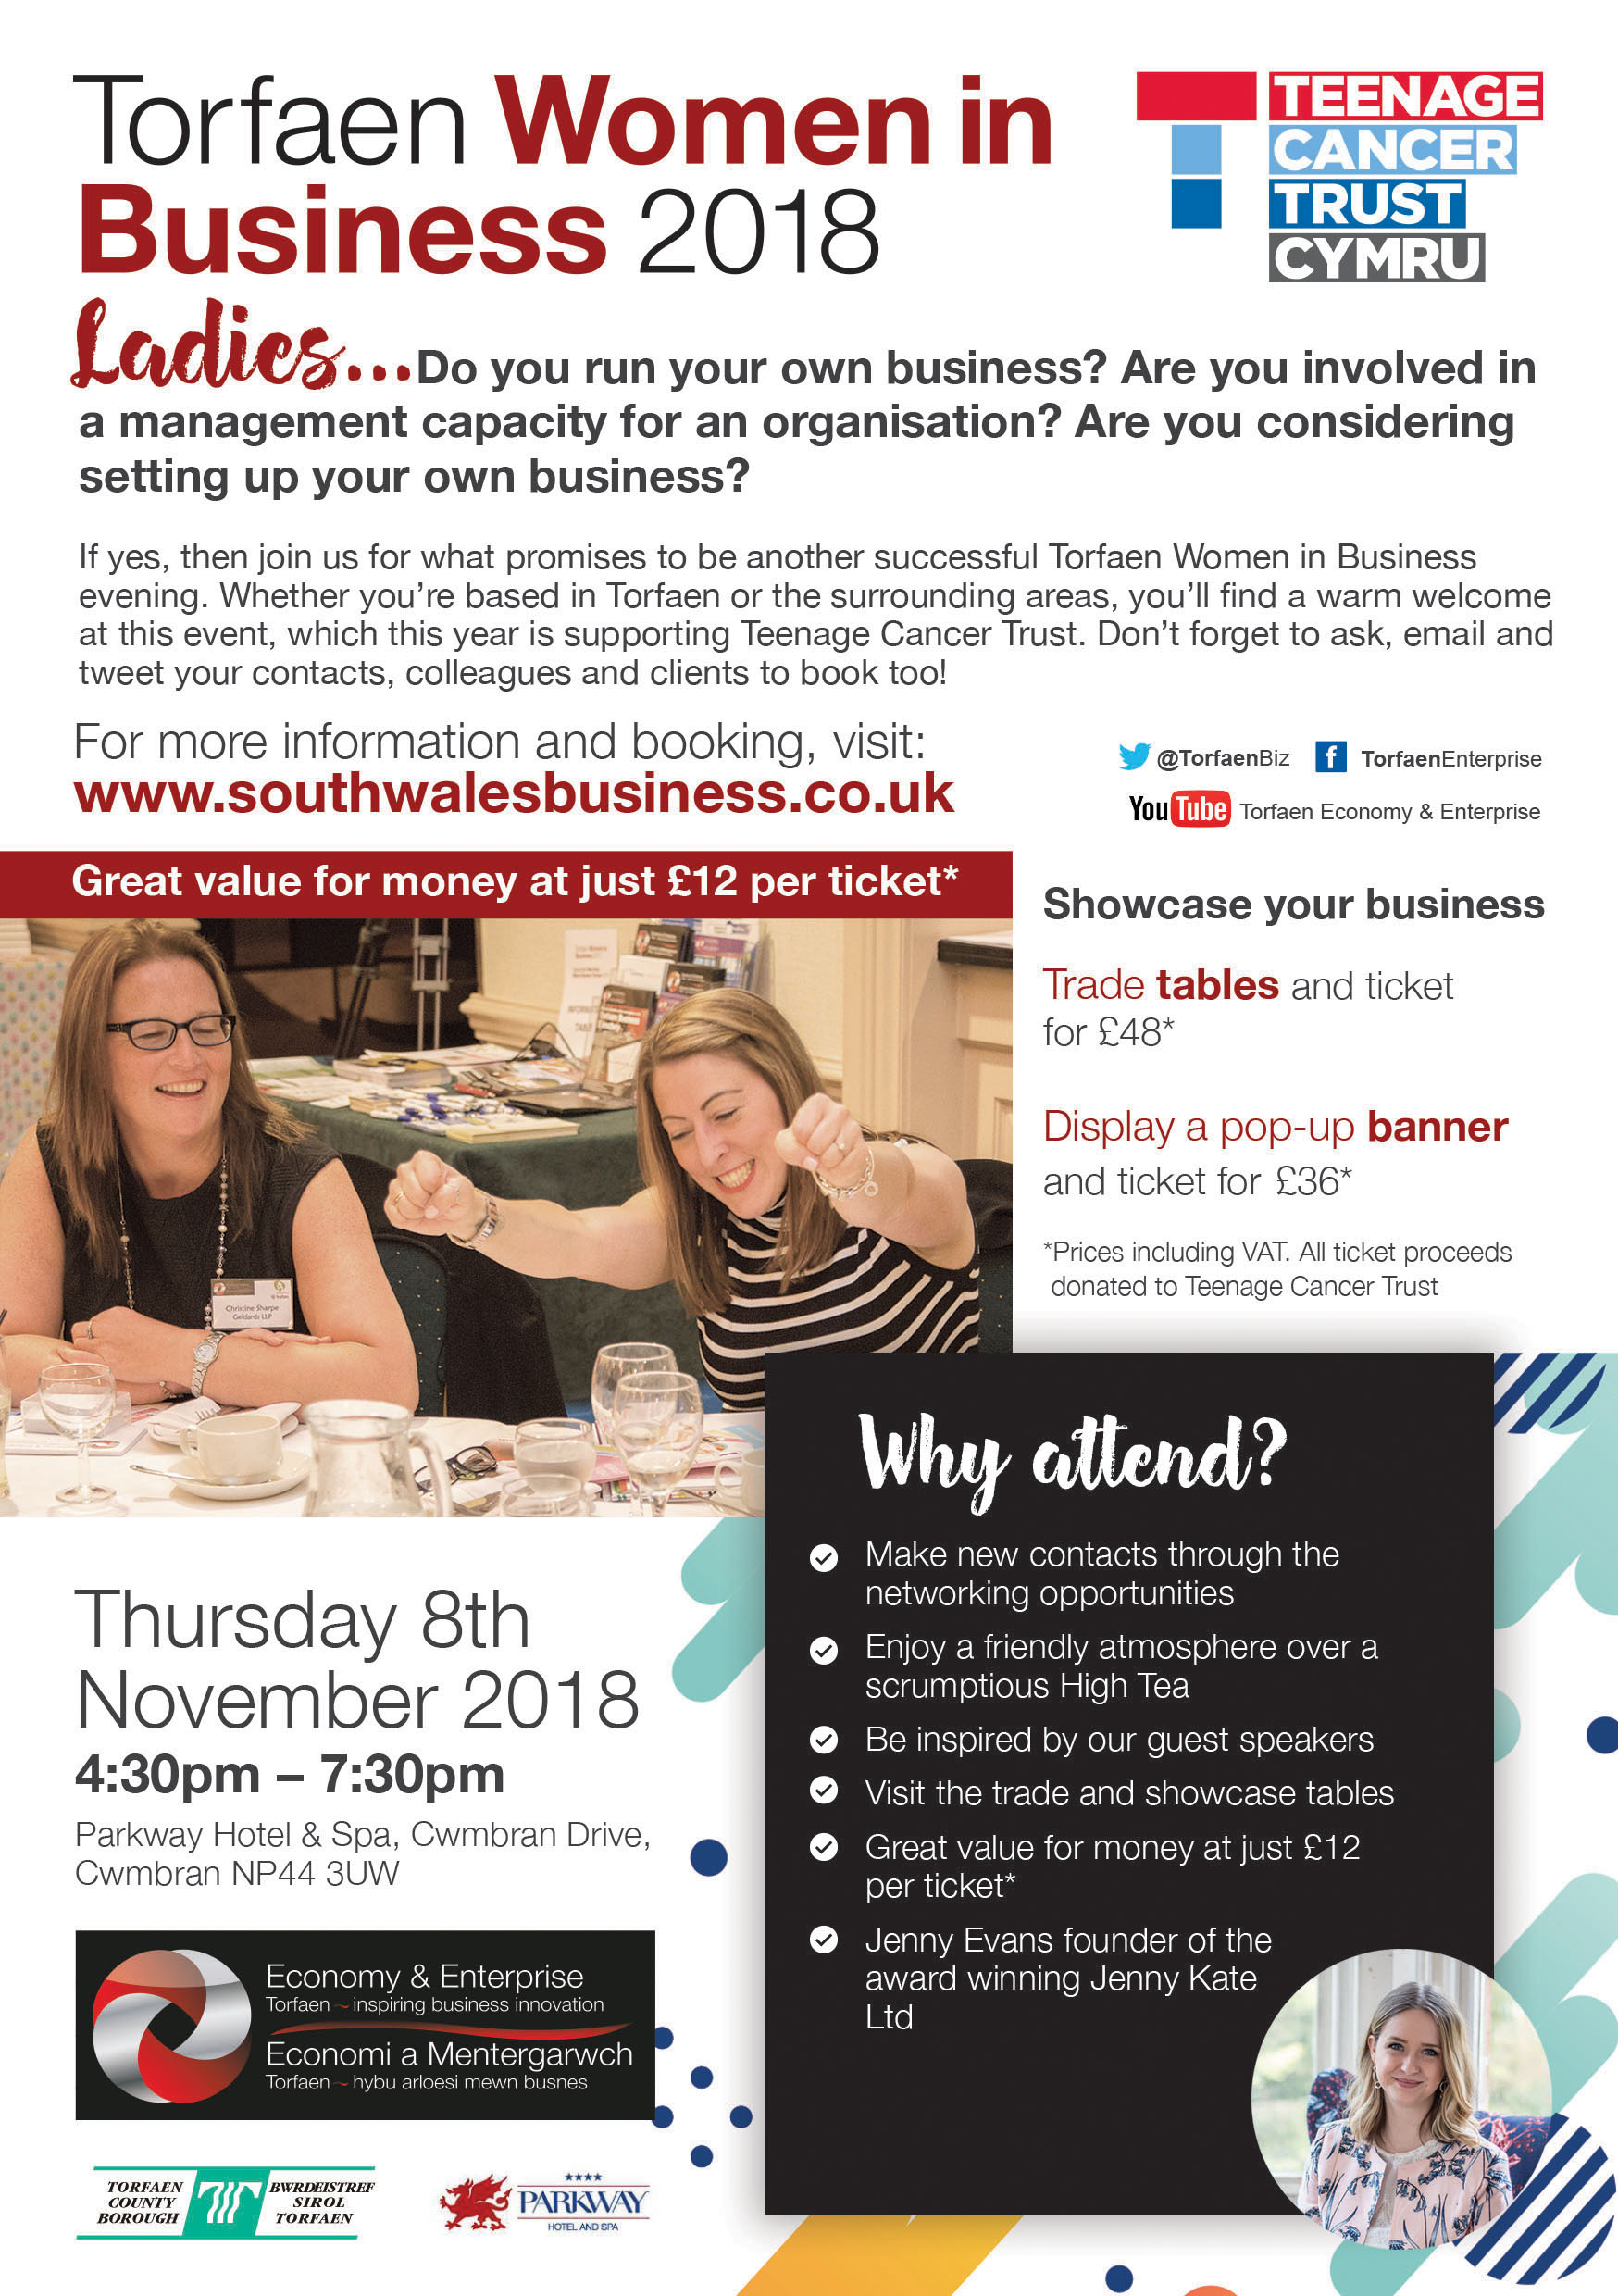 Torfaen Women in Business 2018